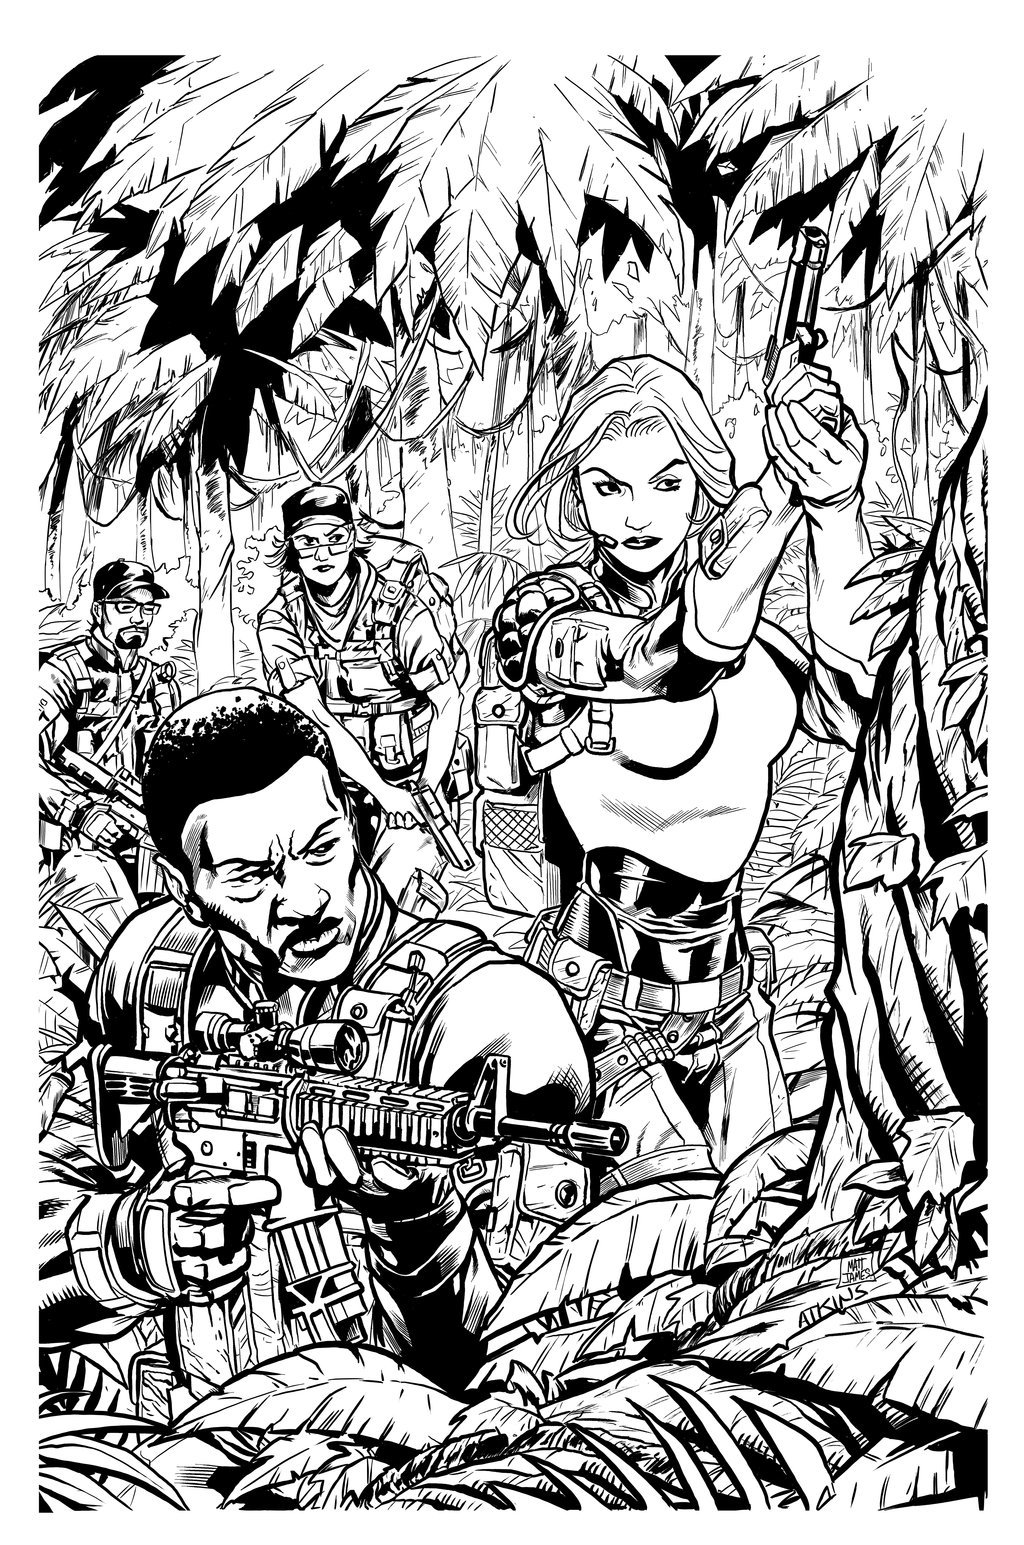 G.I. Joe 20 Cover (Ink Sample)